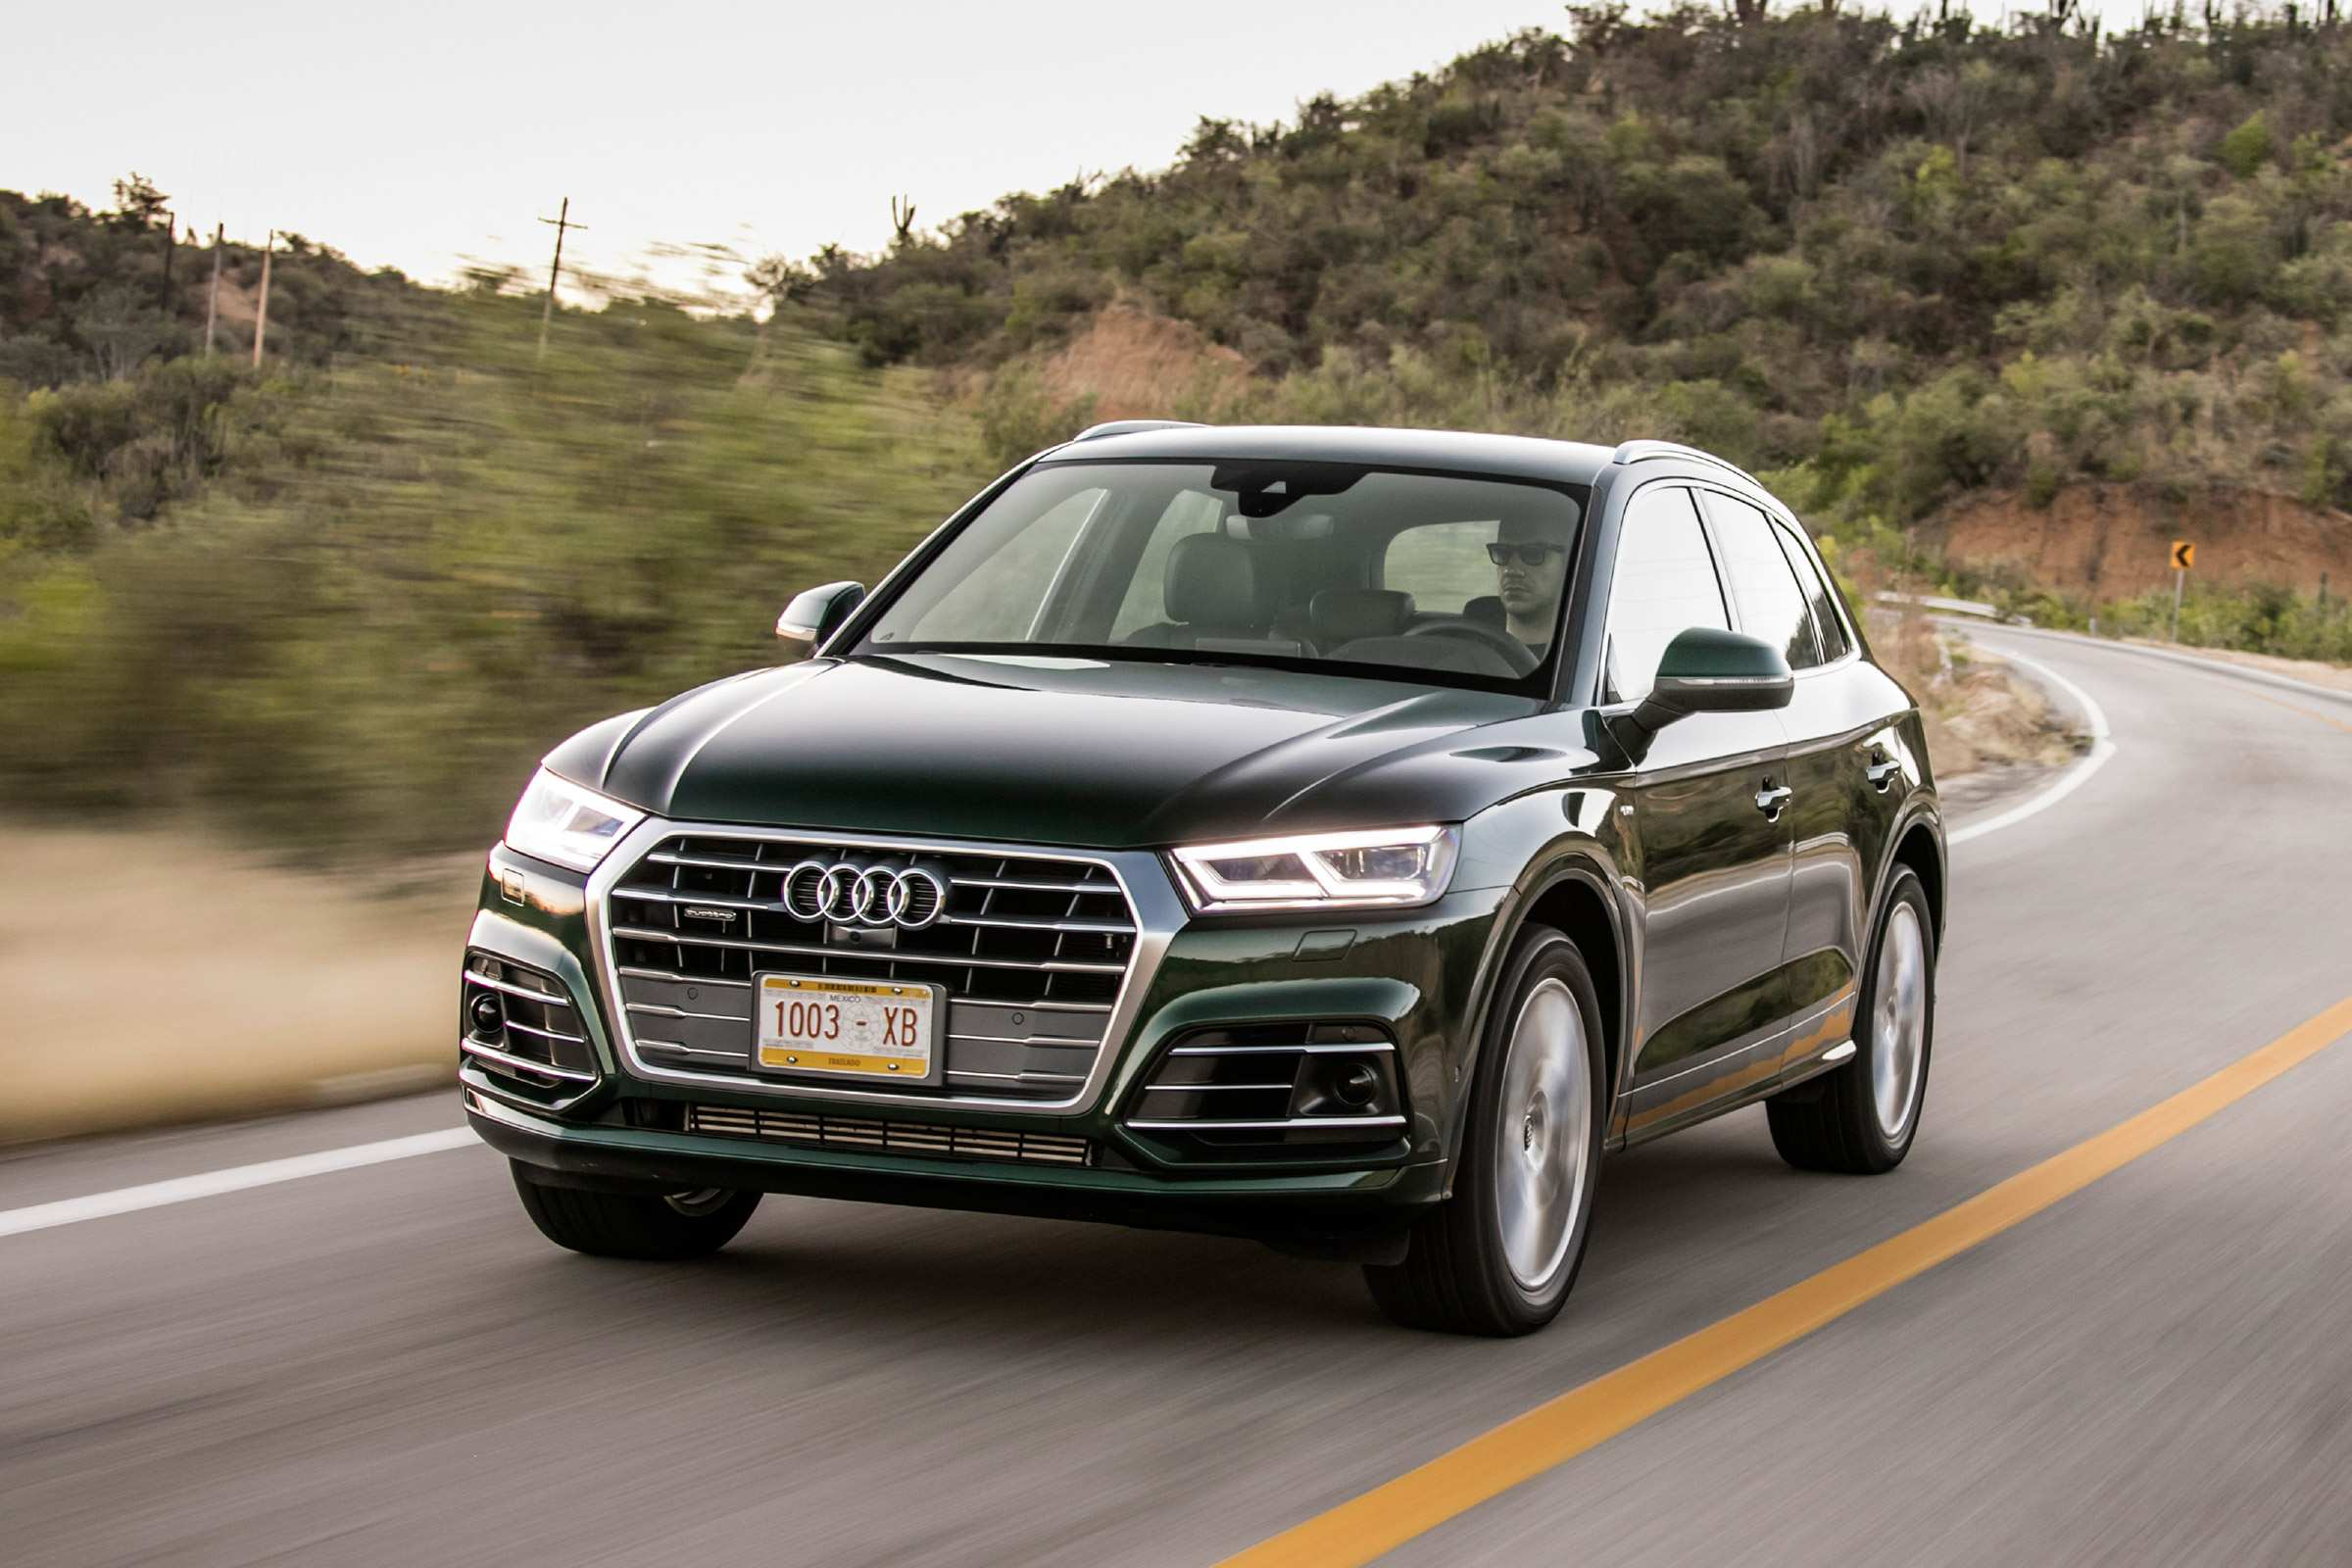 79 The Best Xe Audi Q5 2020 Style